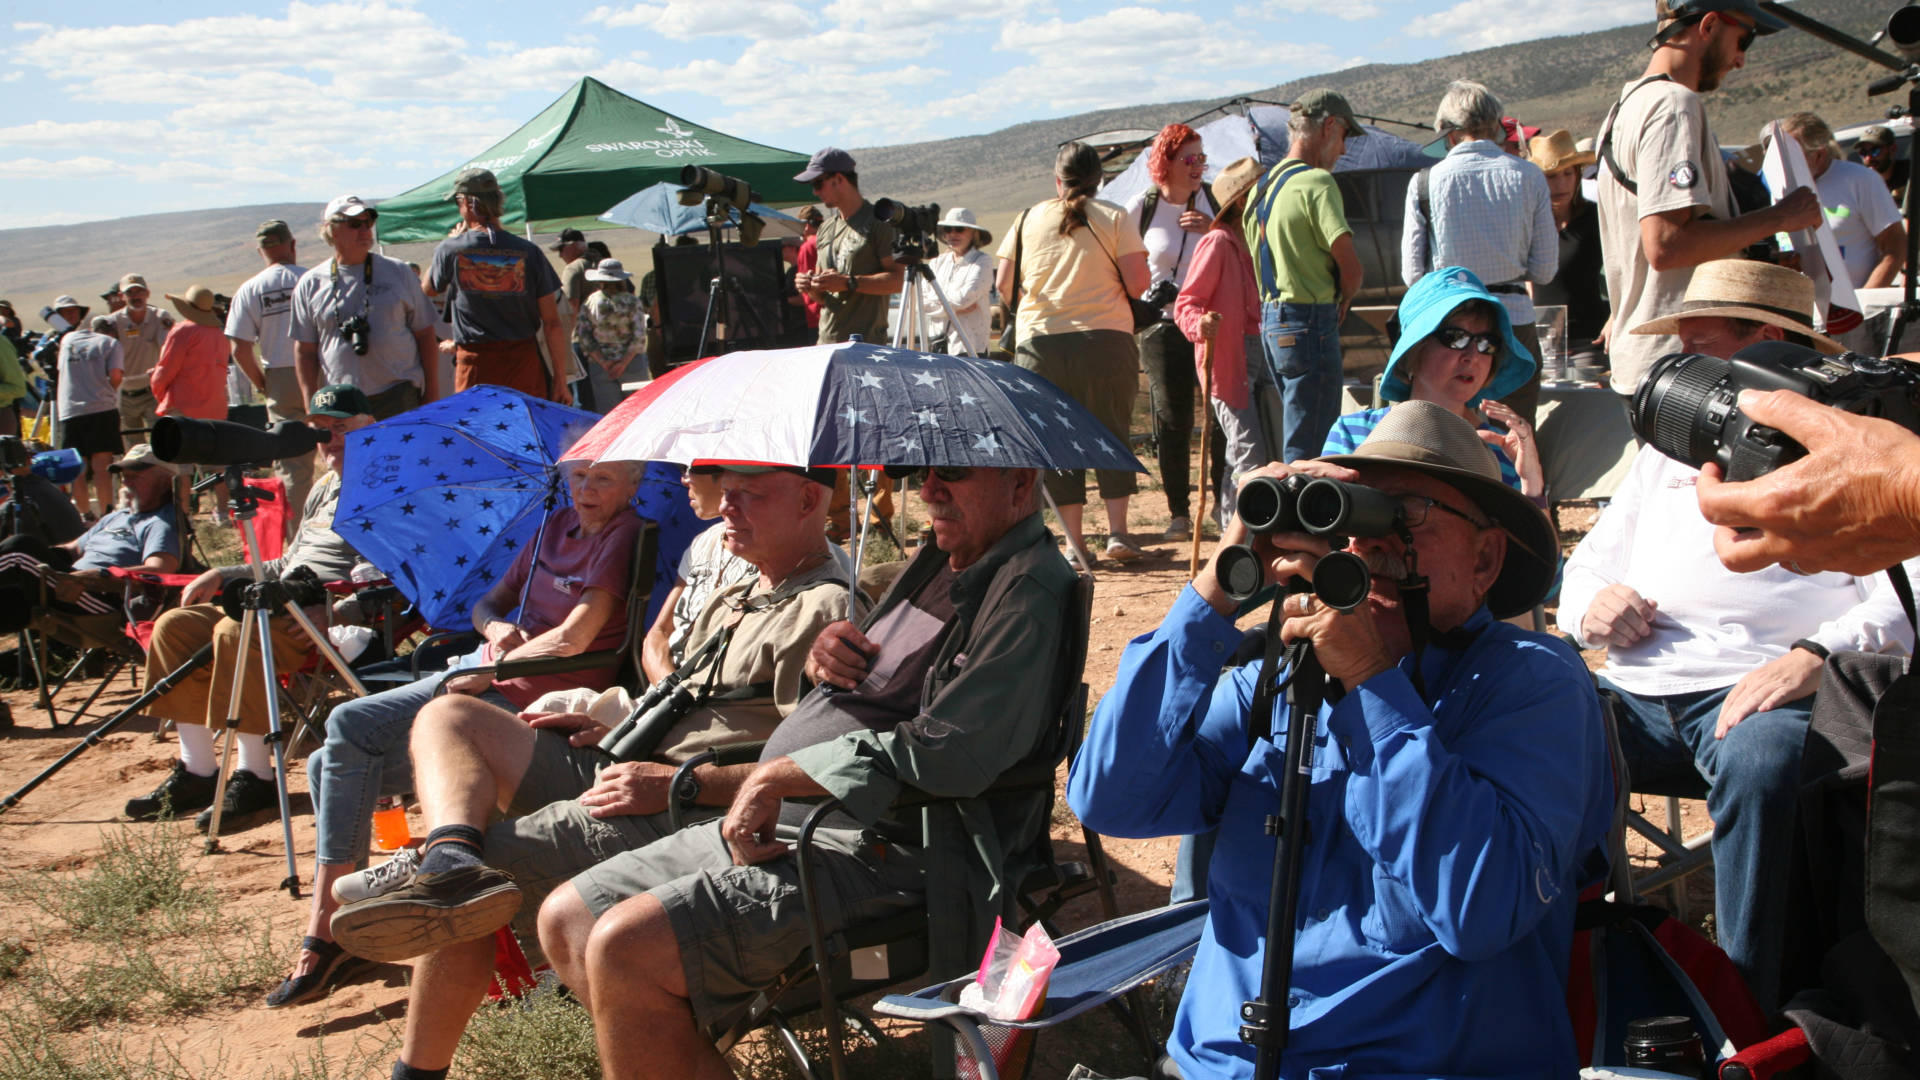 This year, more than 750 people came to see the release of the condors at Vermilion Cliffs National Monument in Arizona.